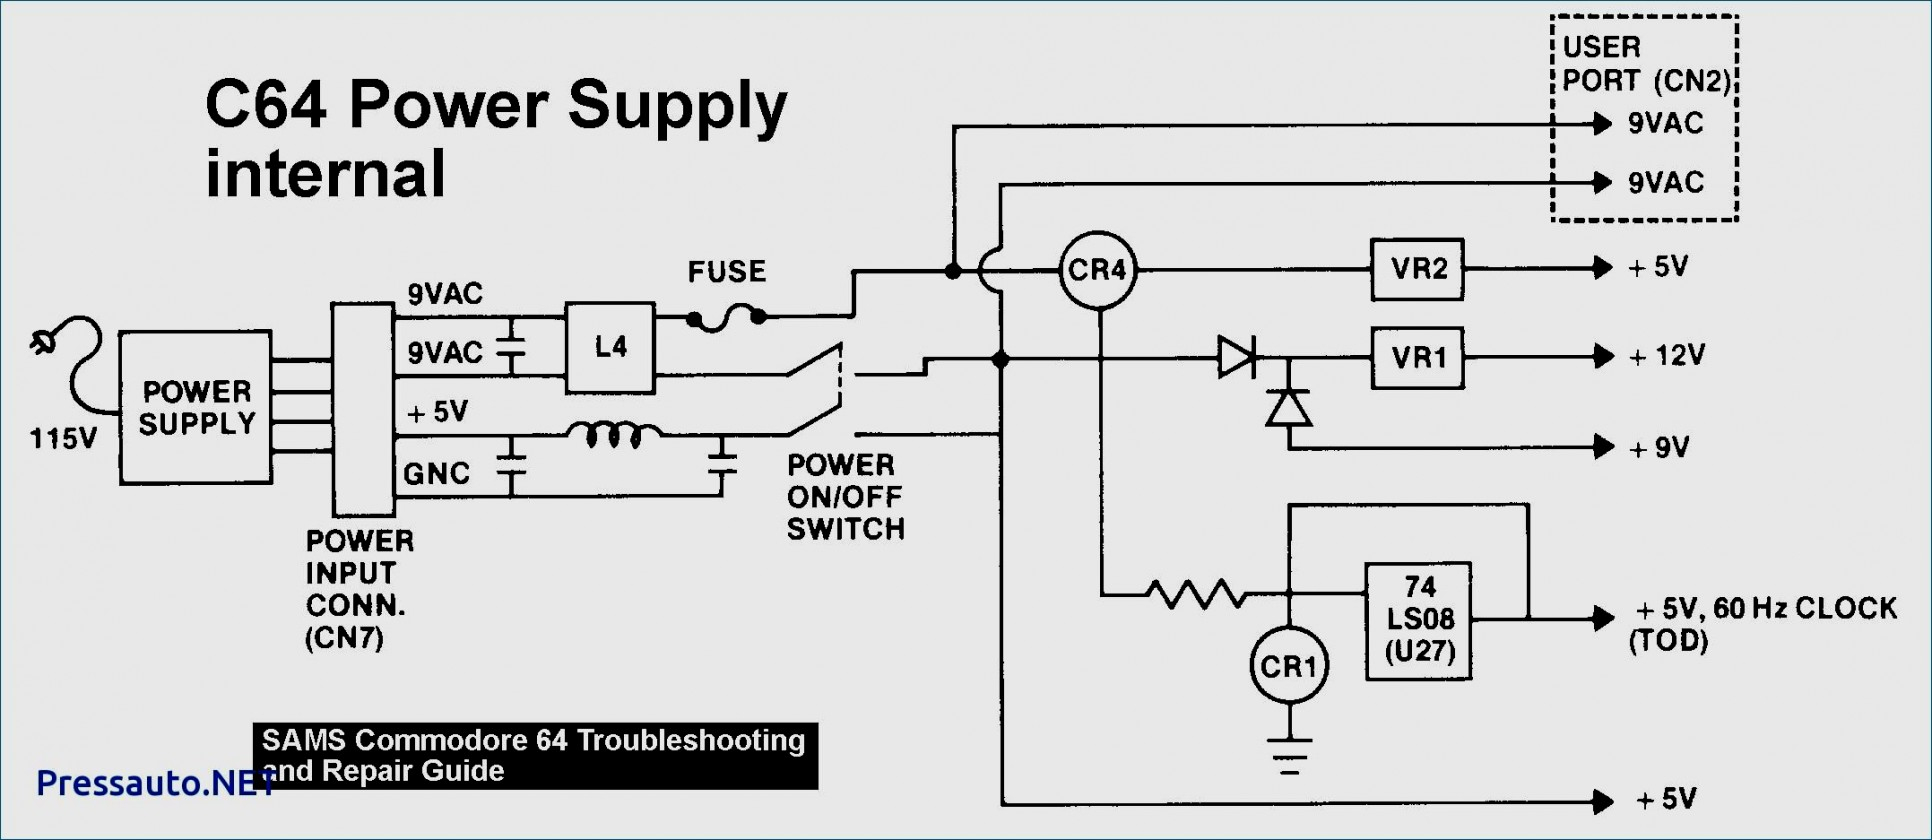 dell power supply color wiring diagram wiring diagram option power cord schematic wiring diagram mega dell power supply color wiring diagram